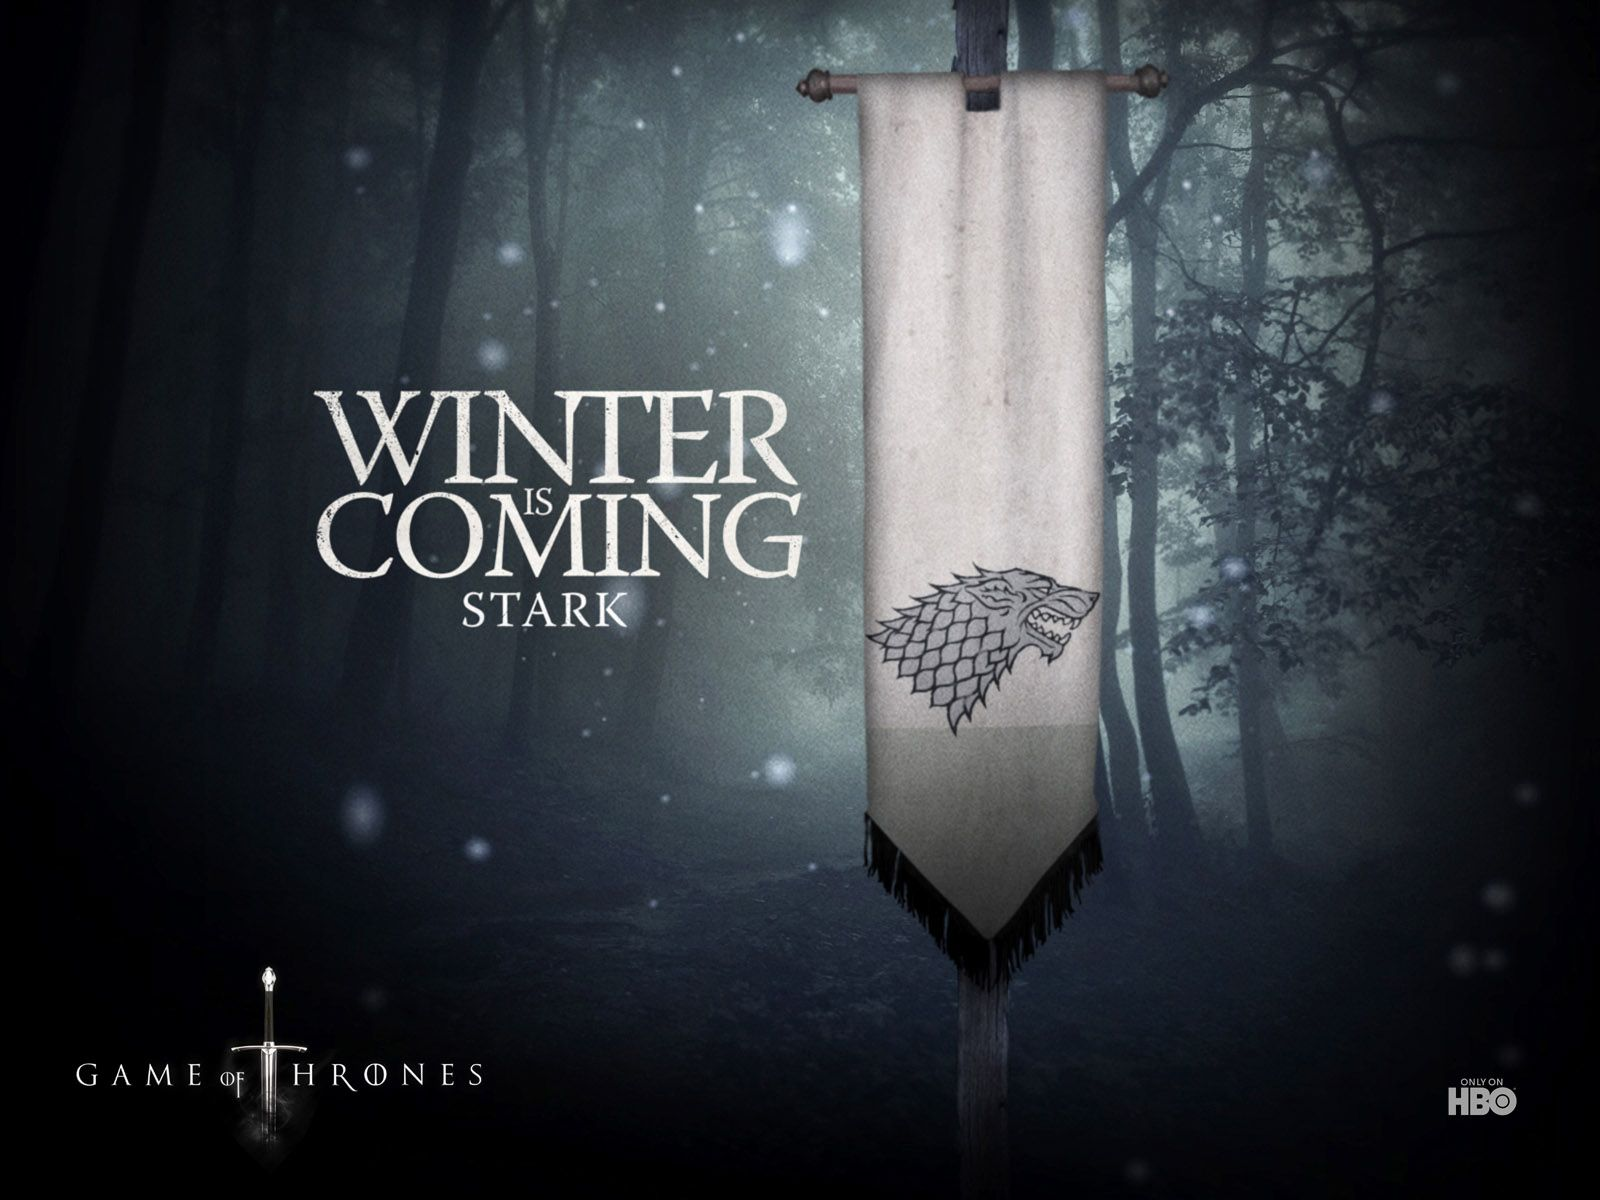 House Stark Game Of Thrones Poster Game Of Thrones Winter Hbo Game Of Thrones